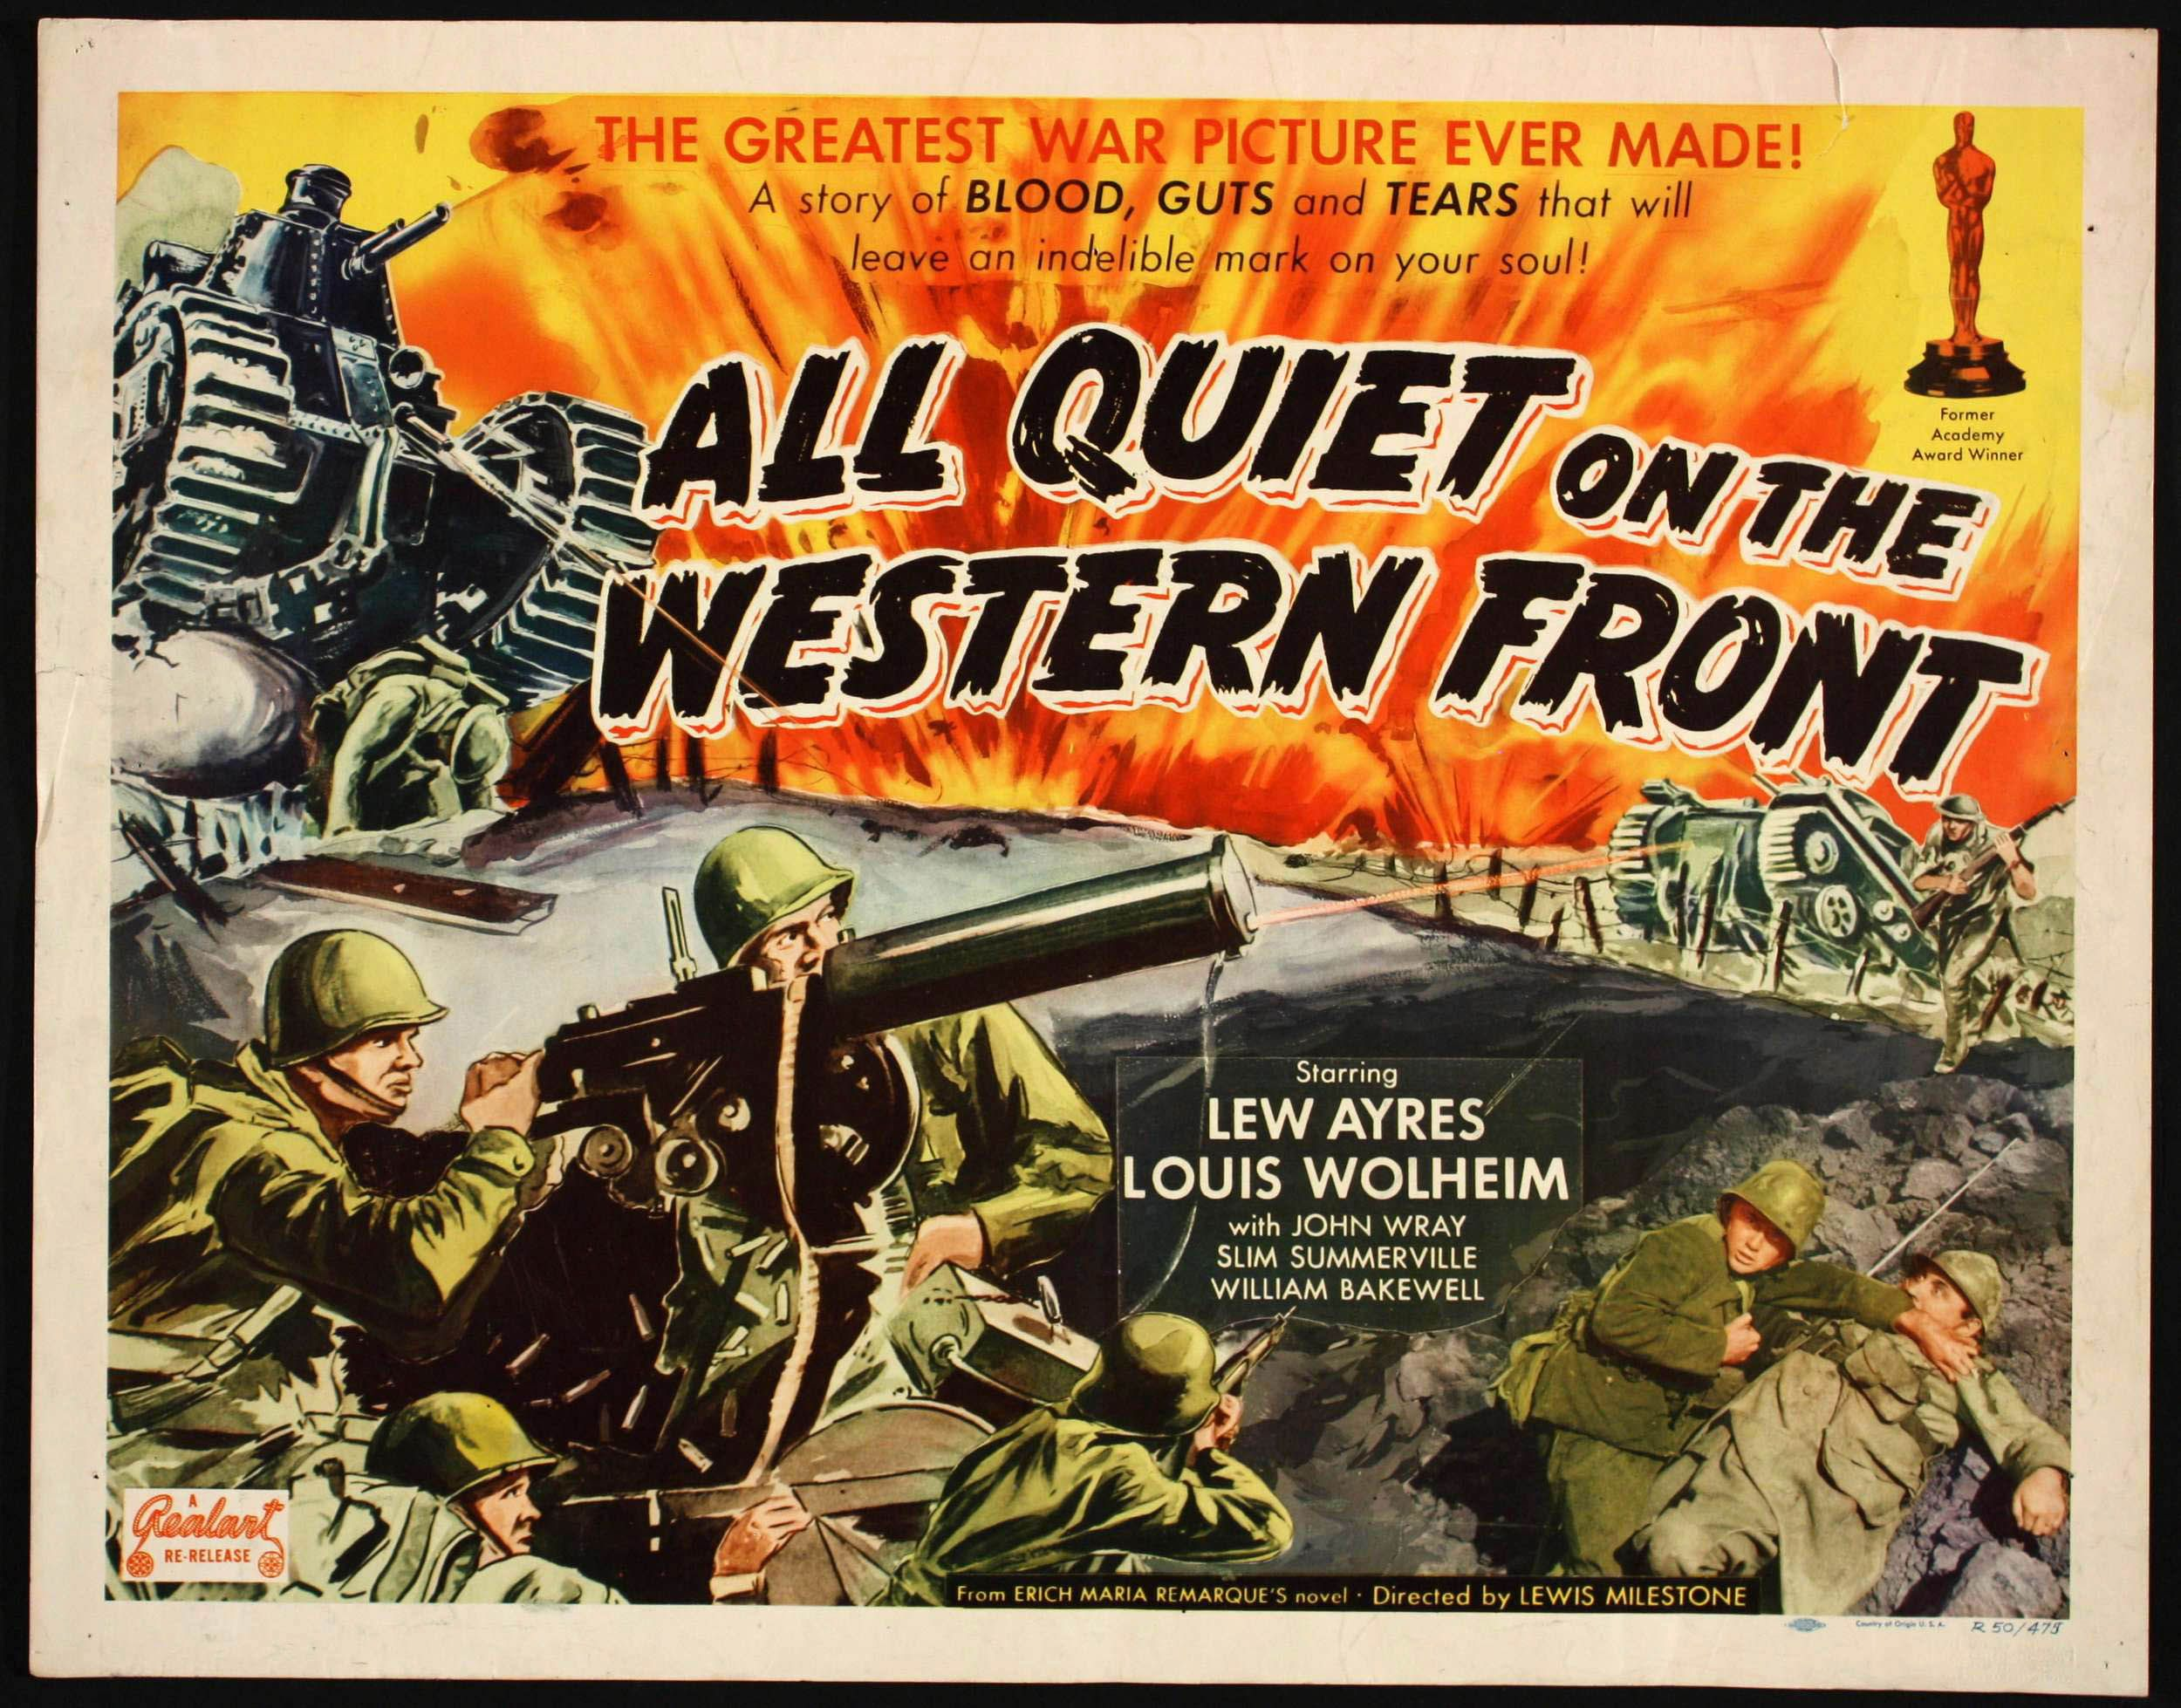 essay on all quiet on the western front movie  essay on all quiet on the western front movie